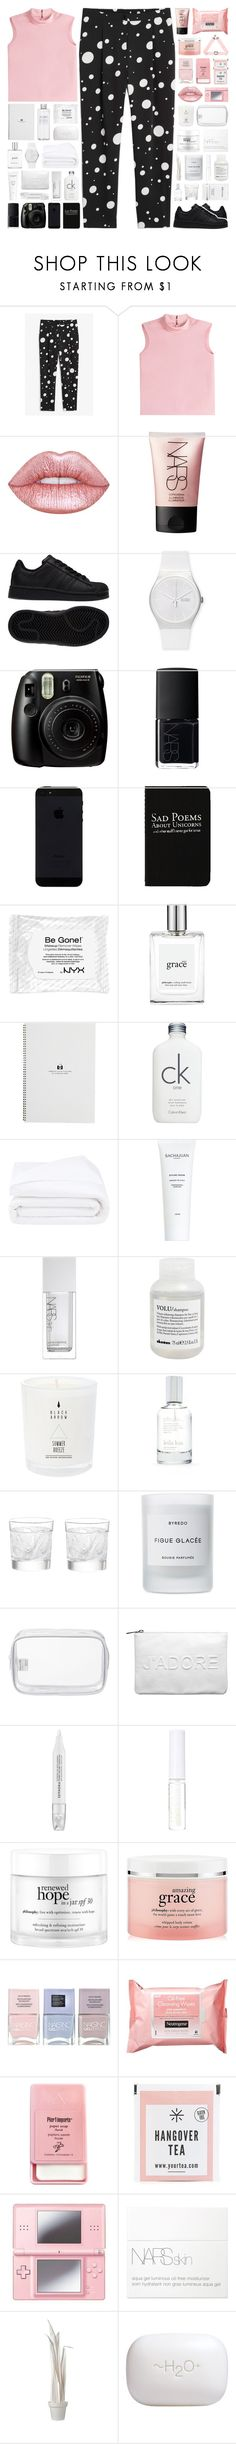 """""""if you're not with me, i'd rather not be saved"""" by allyrobin ❤ liked on Polyvore featuring Monki, RED Valentino, Lime Crime, NARS Cosmetics, adidas, Swatch, Fujifilm, Rich and Damned, NYX and philosophy"""